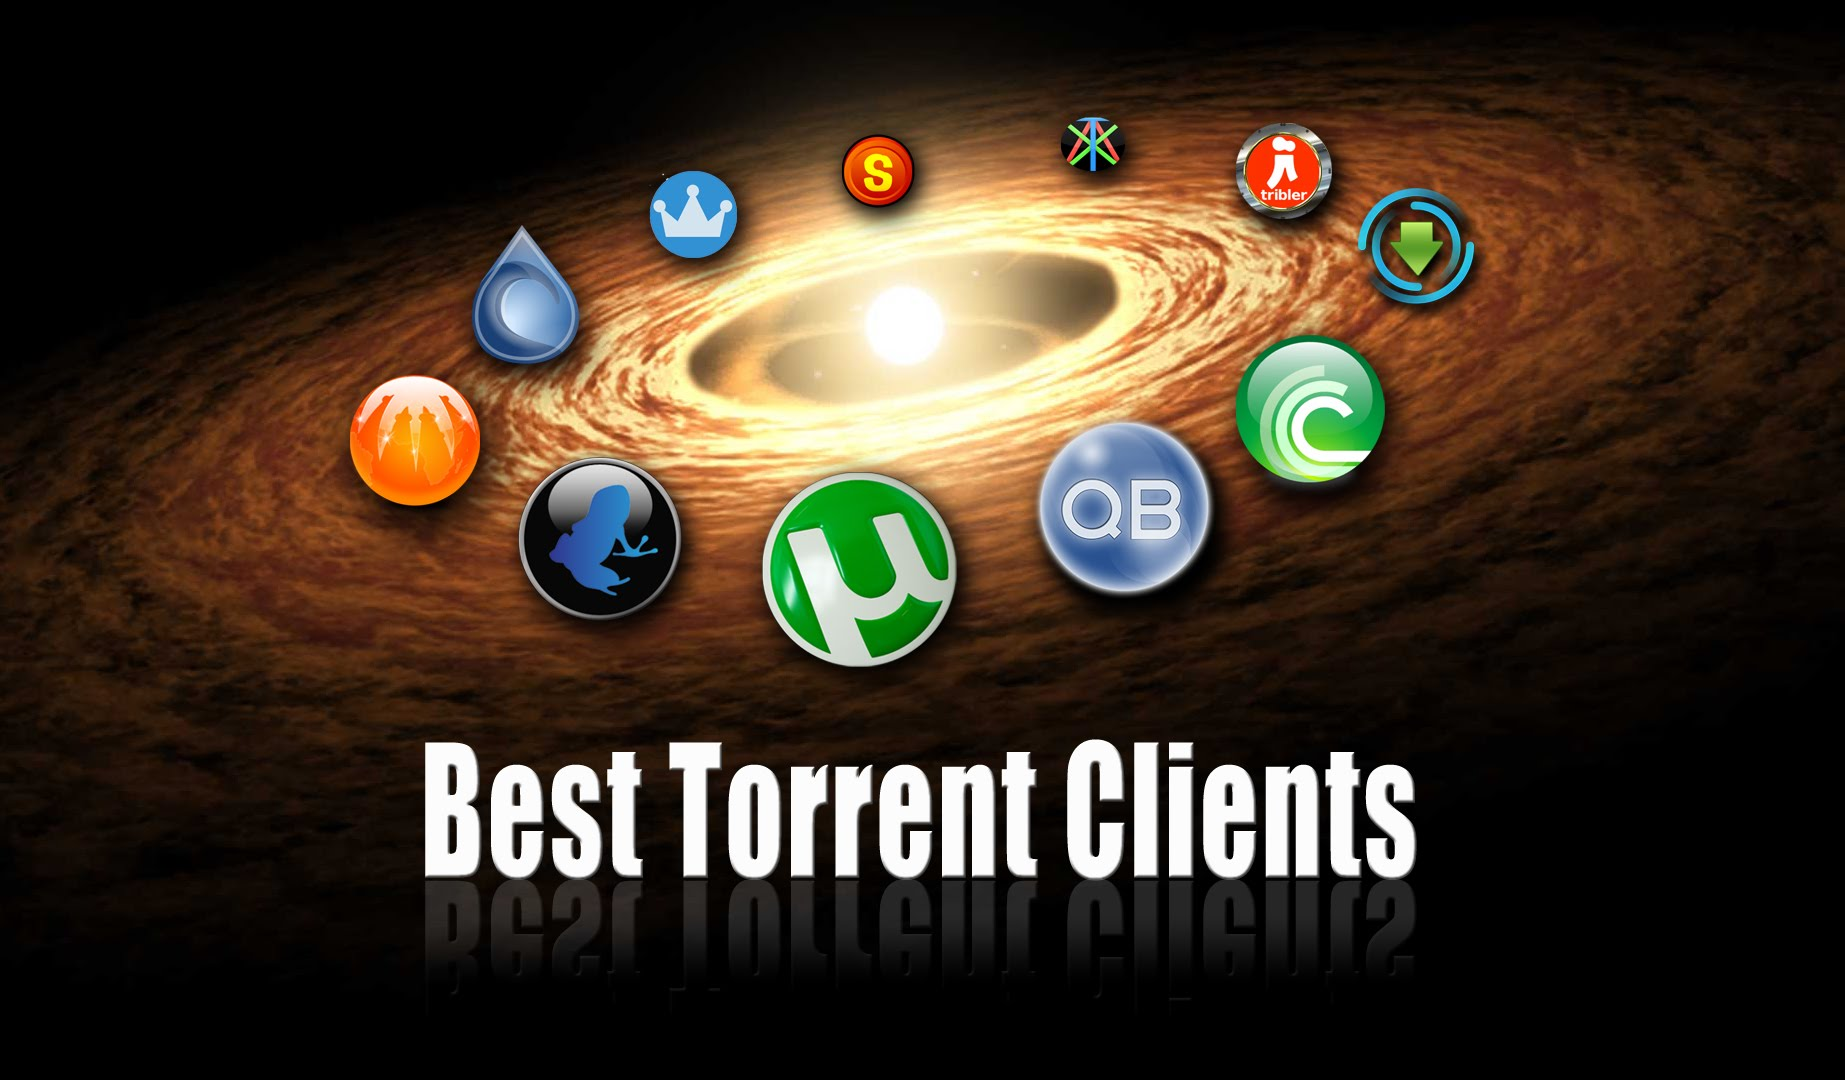 10 Best Torrent Clients for Windows, Mac & Linux - TechMused